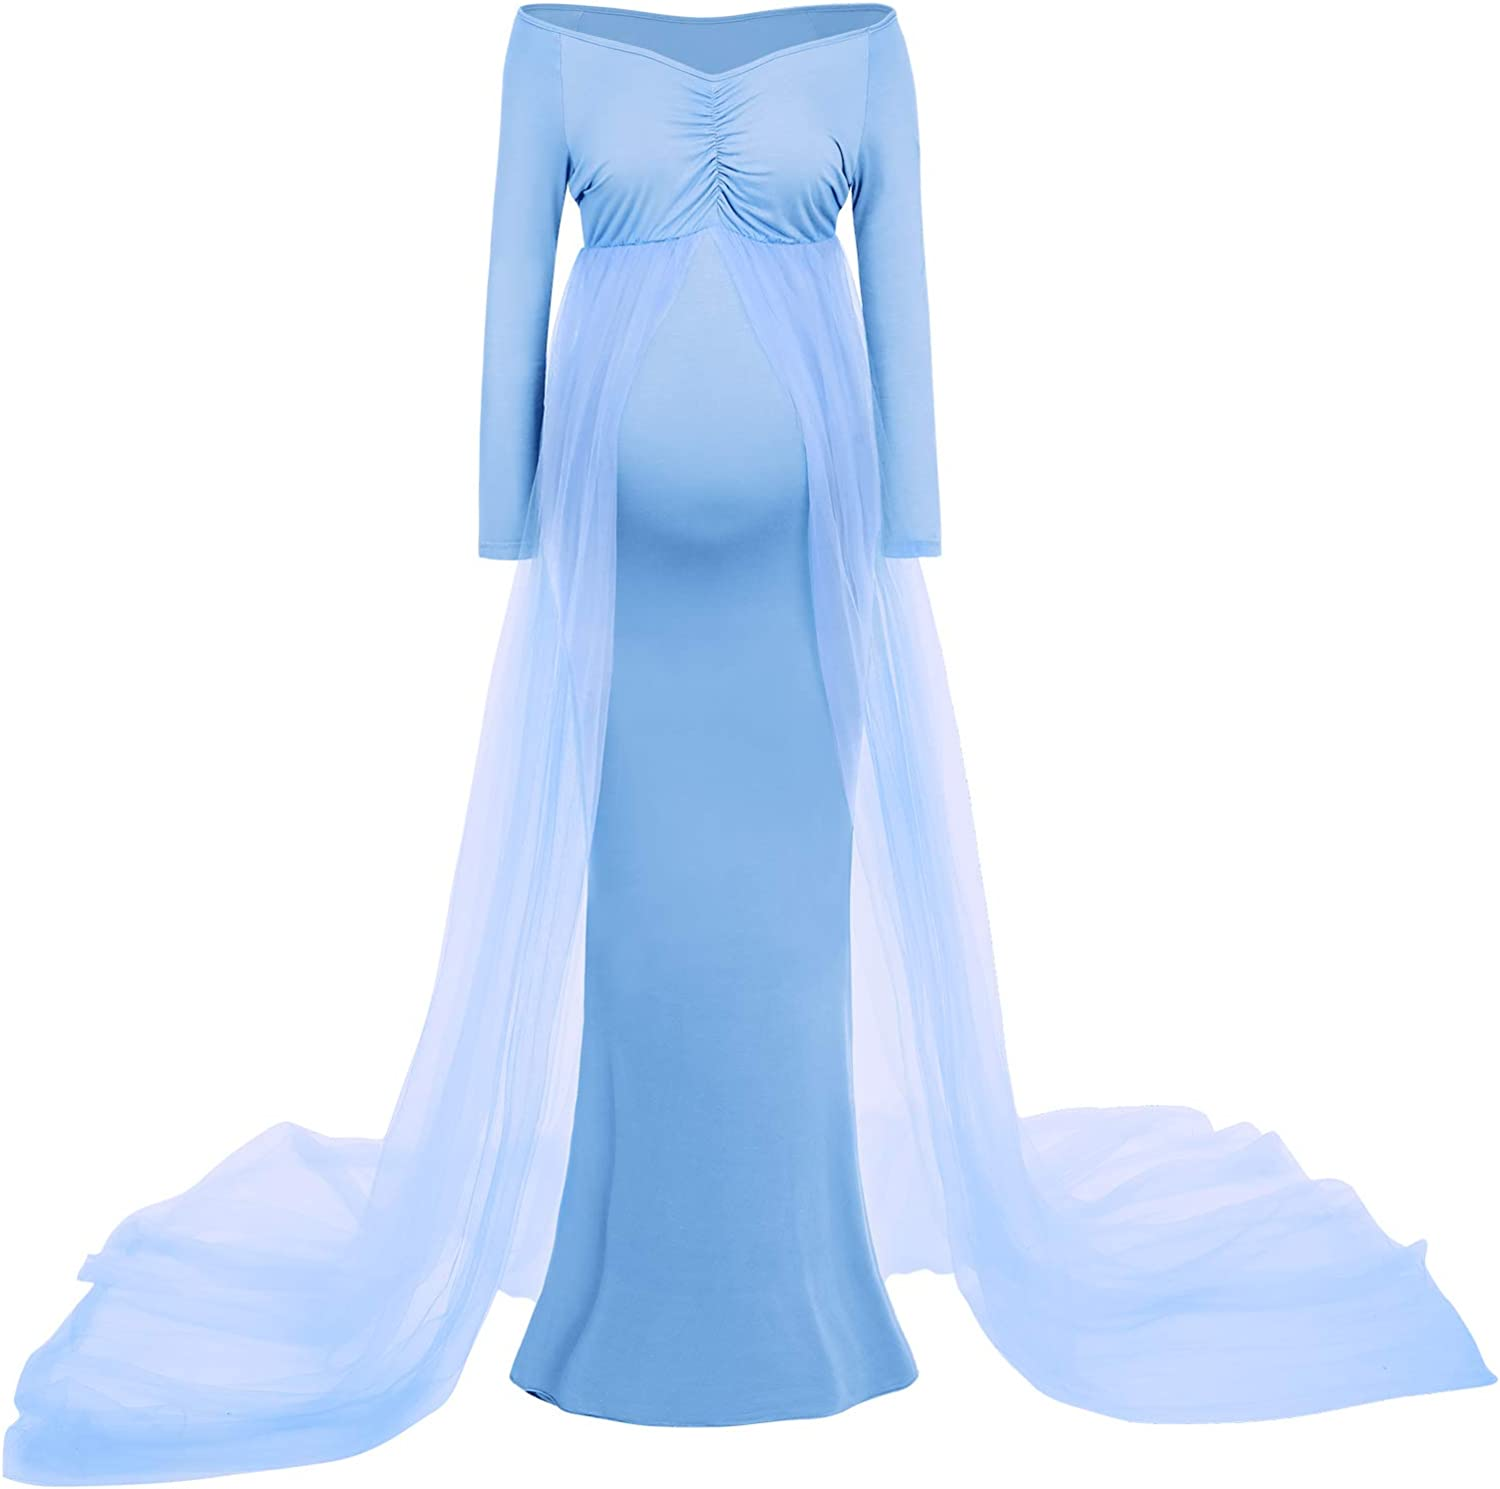 Maternity Off Shoulder Maxi Gown Long Sleeve V Neck Baby Shower Pregnancy Dresses for Photoshoot Wedding Evening Dress